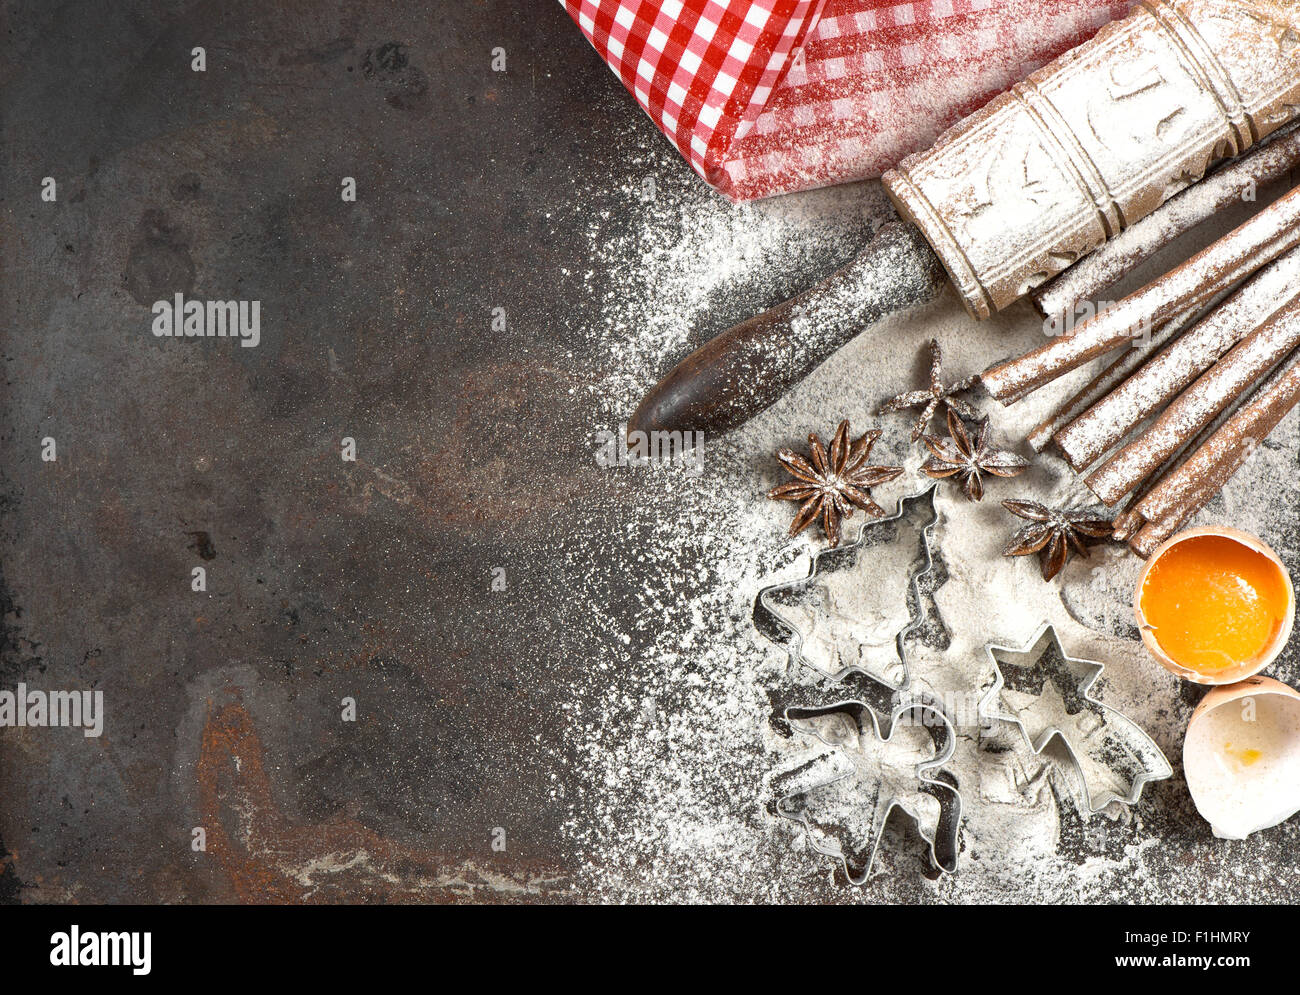 Christmas food. Baking ingredients, spices and tolls. Flour, eggs, rolling pin and cookie cutters - Stock Image